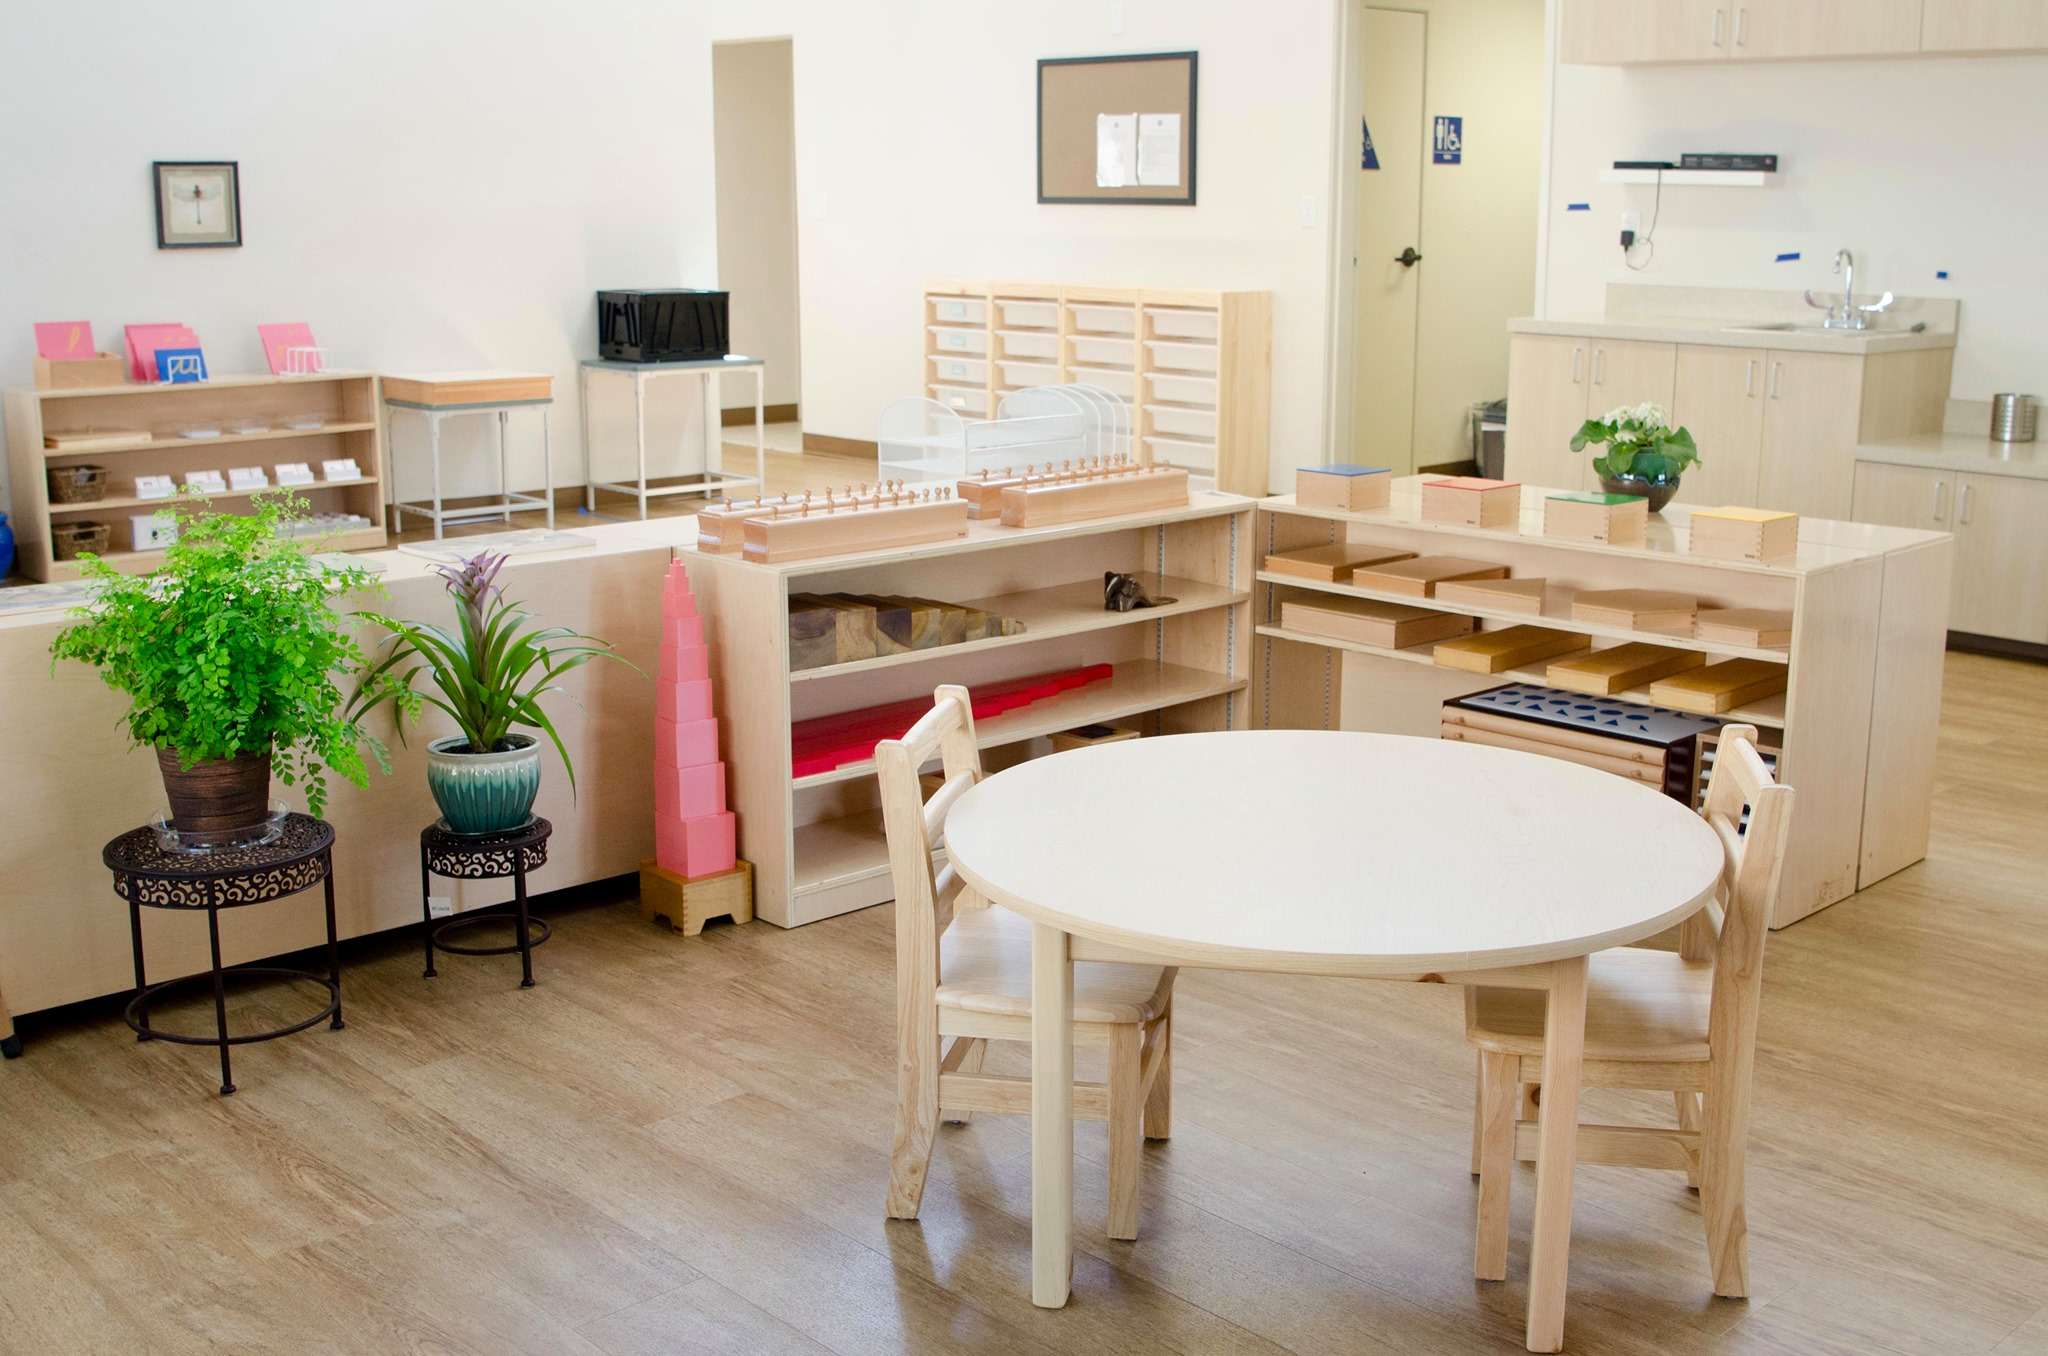 NEWS - Guidepost Montessori Opens New St. Louis Campus